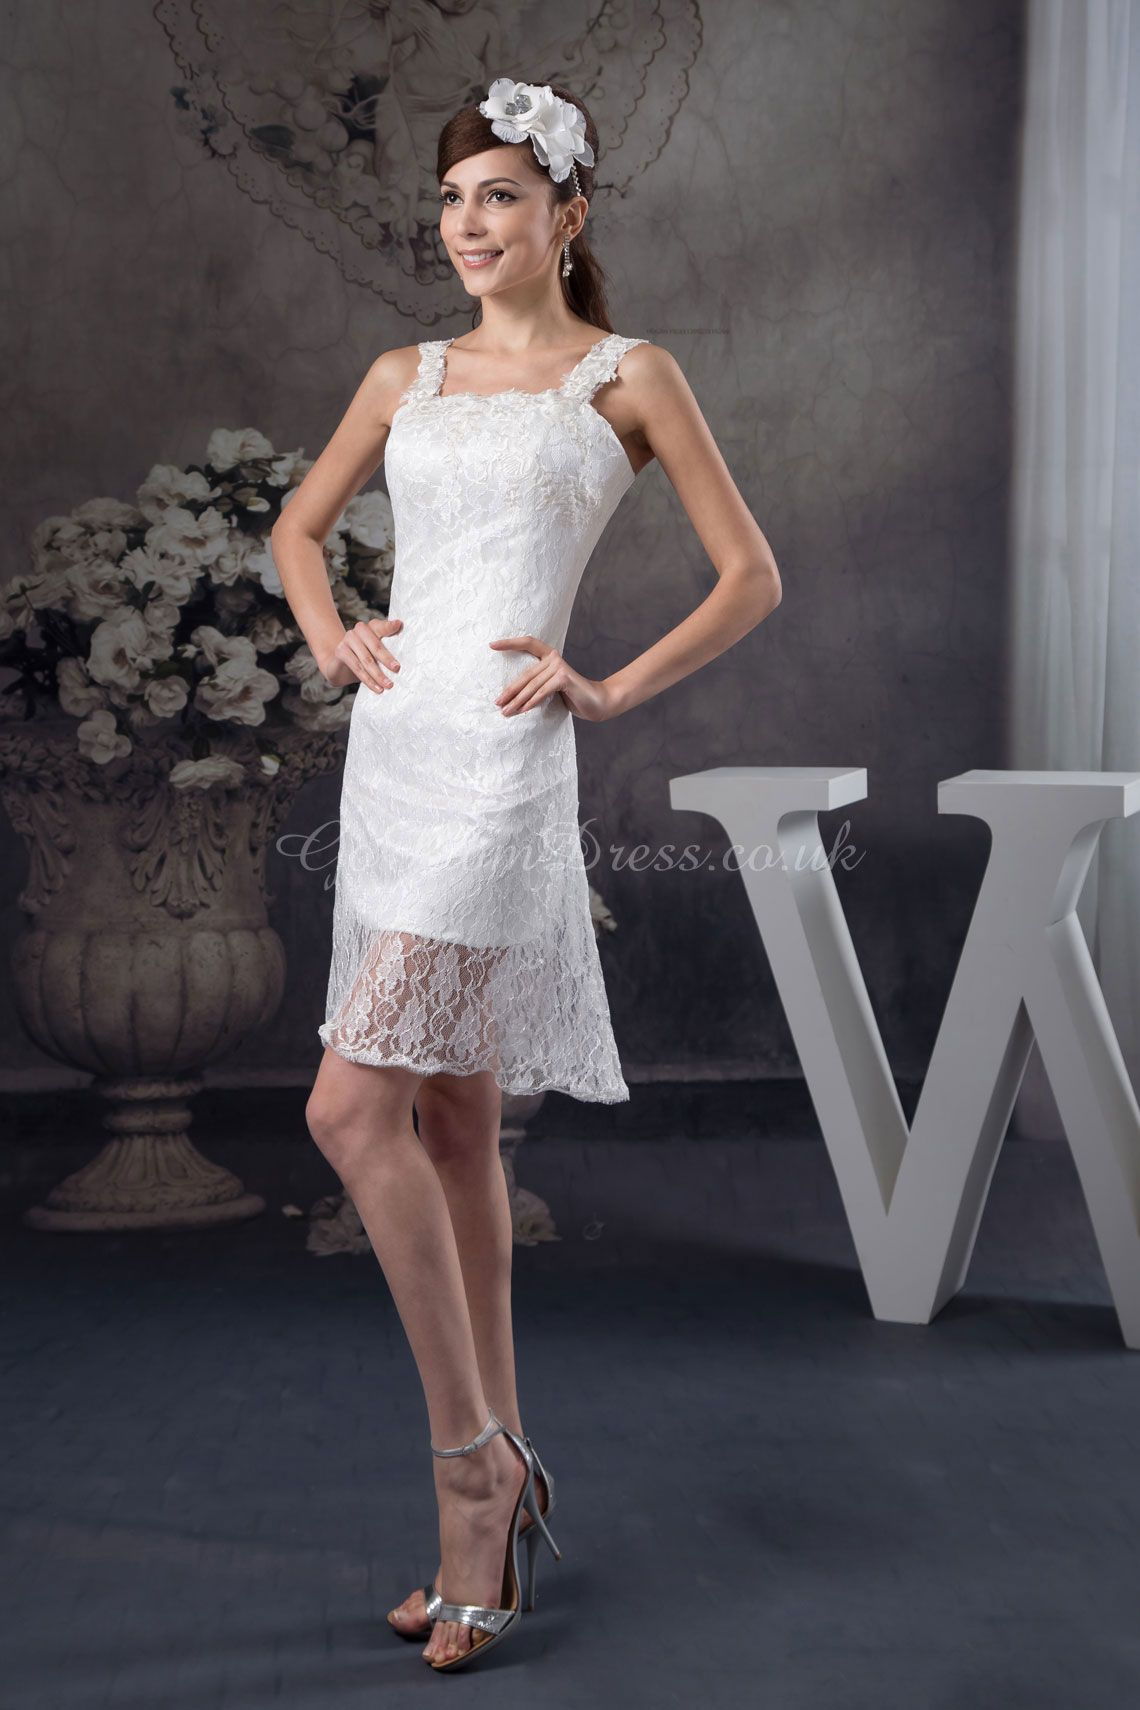 Mini white wedding dress  SheathColumn Lace Straps Natural Waist ShortMini Length Zipper